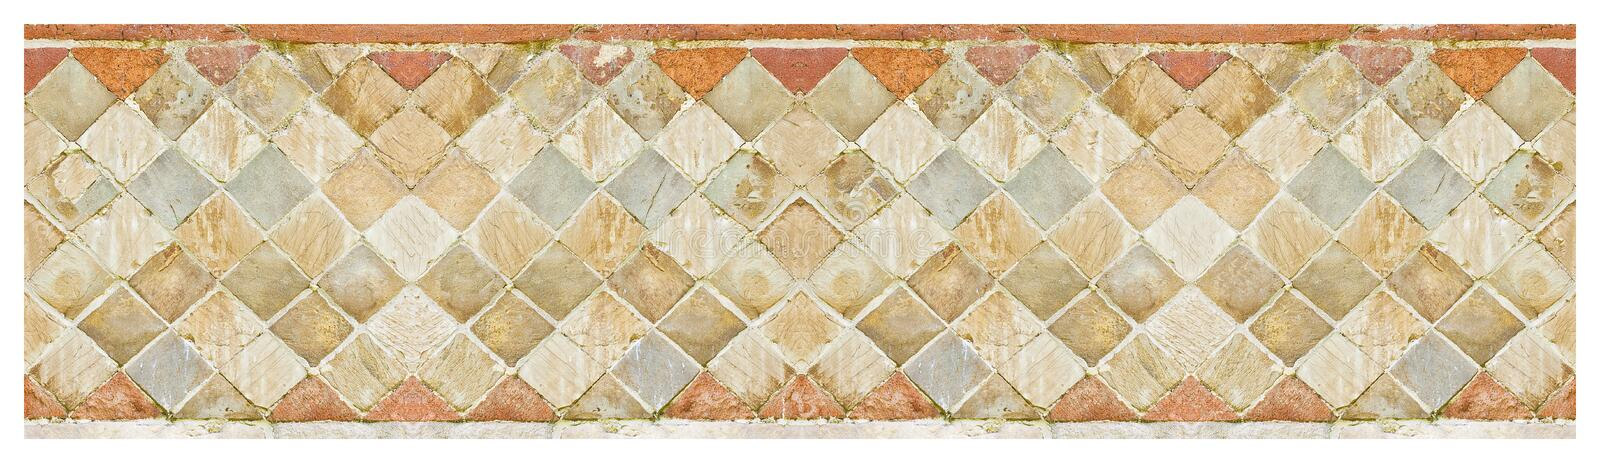 Italian medieval brick and stone wall in Latin called -opus incertum- with stones and bricks - seamless pattern.  royalty free stock photos